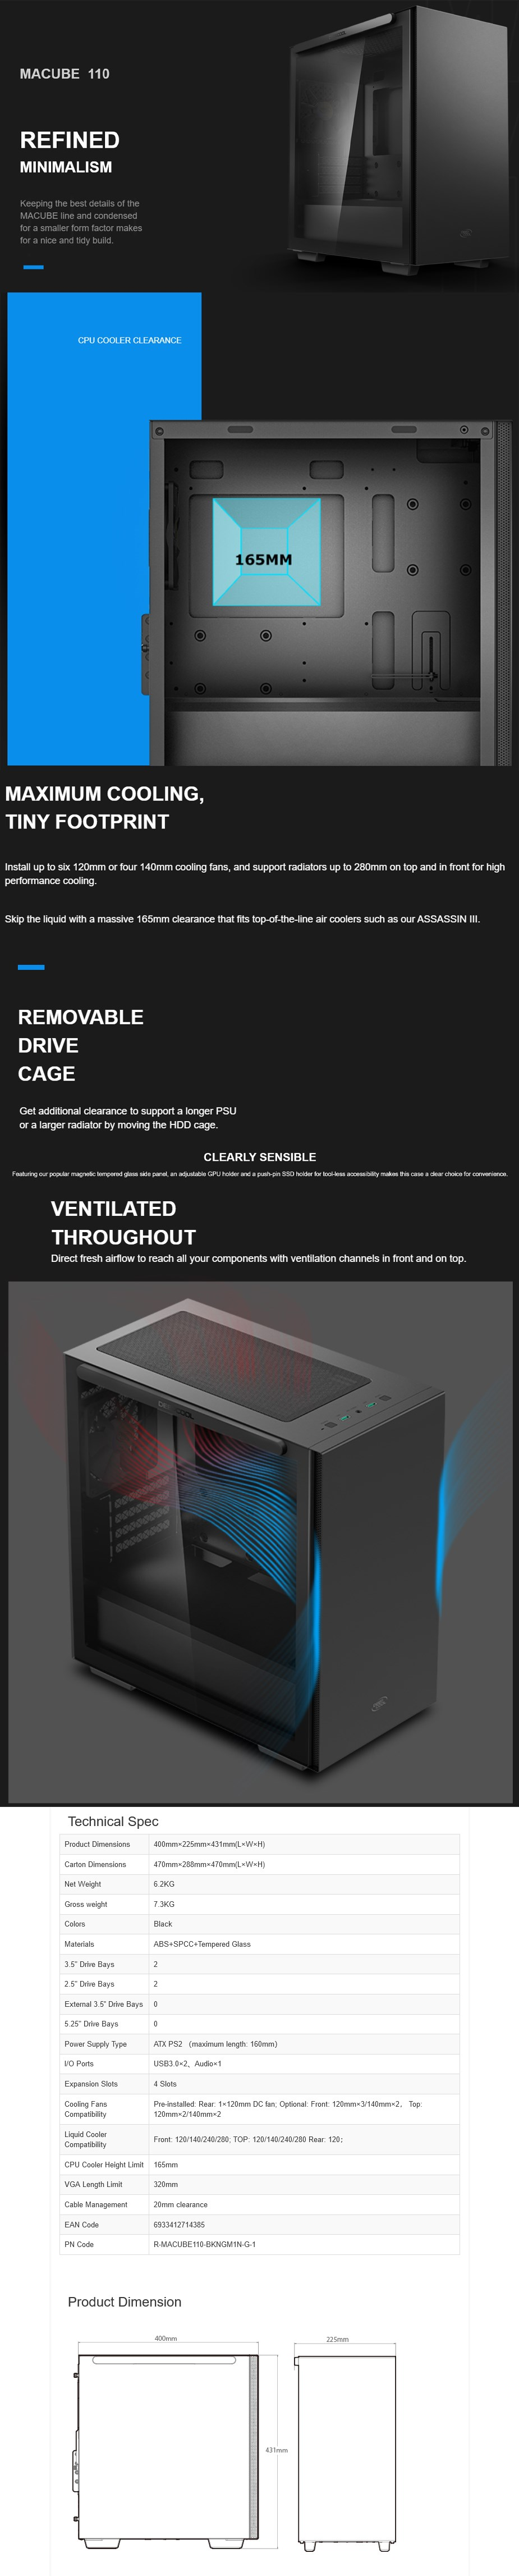 Deepcool MACUBE 110 Tempered Glass Mini Tower Micro-ATX Case - Black - Overview 1